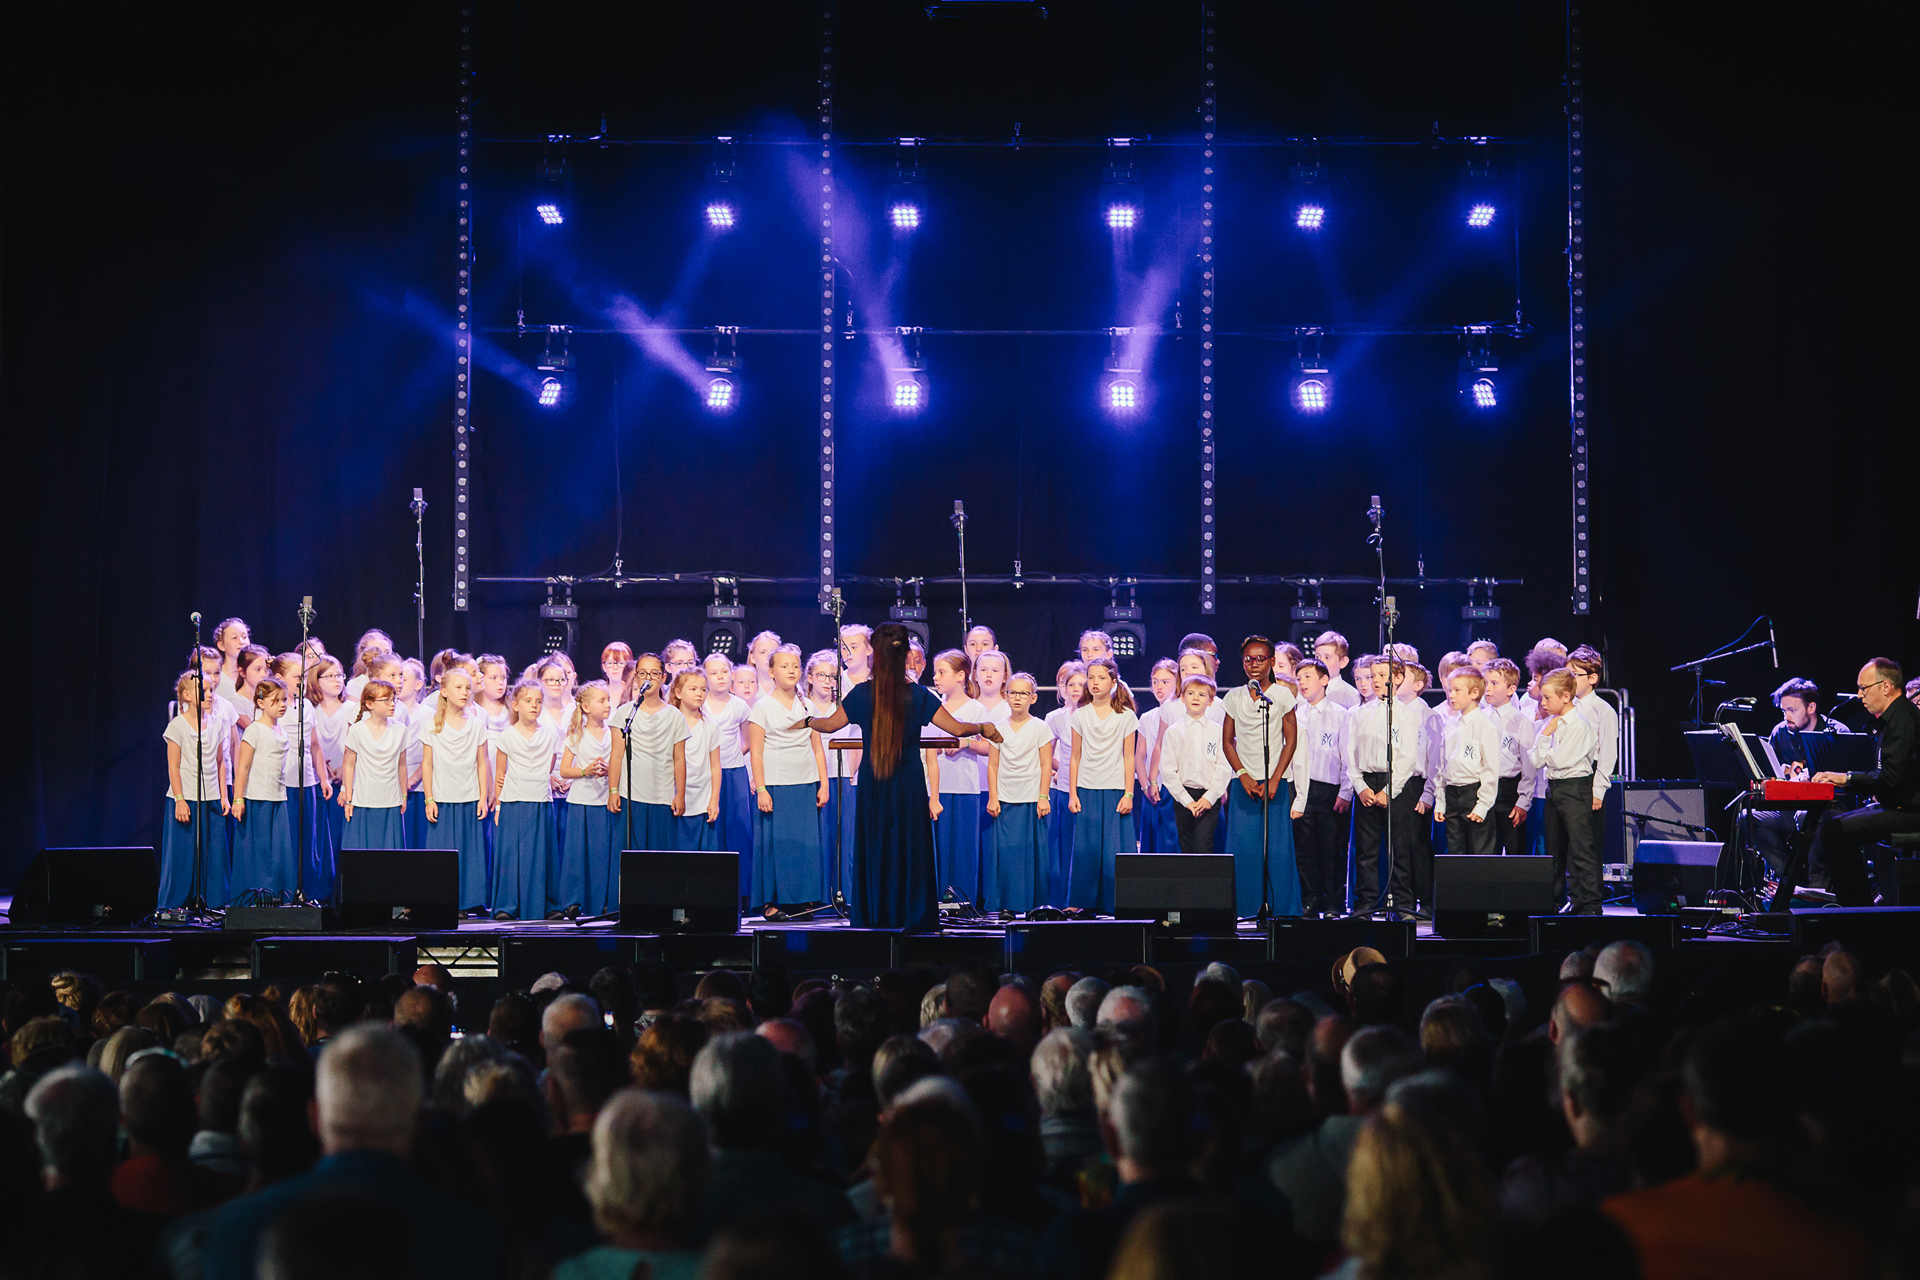 Barnsley Youth Choir – Underneath the Stars